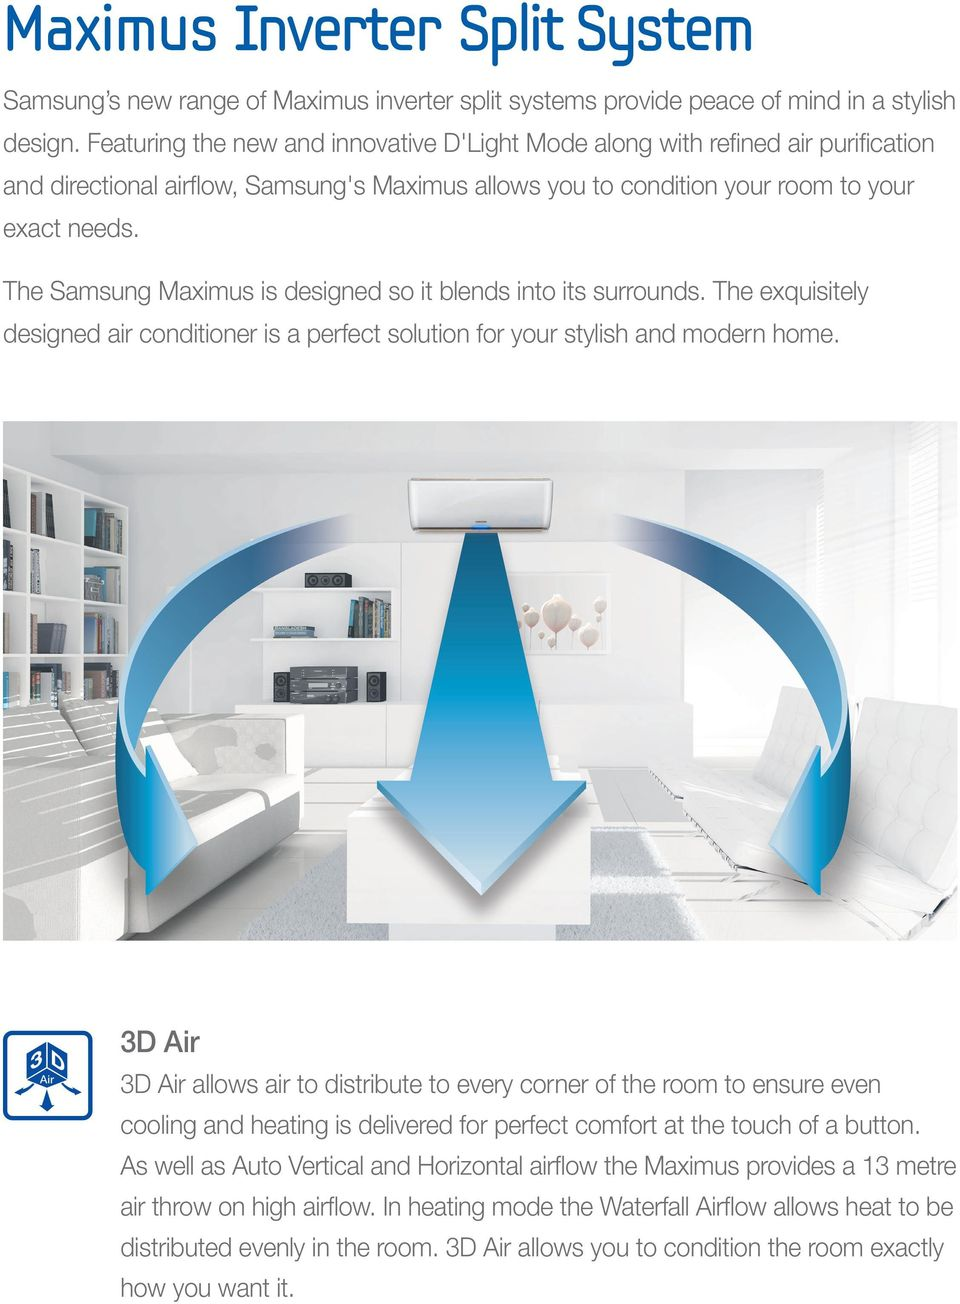 Samsung Room Air Conditioning Pdf Split Type Aircon Wiring Diagram The Maximus Is Designed So It Blends Into Its Surrounds Exquisitely